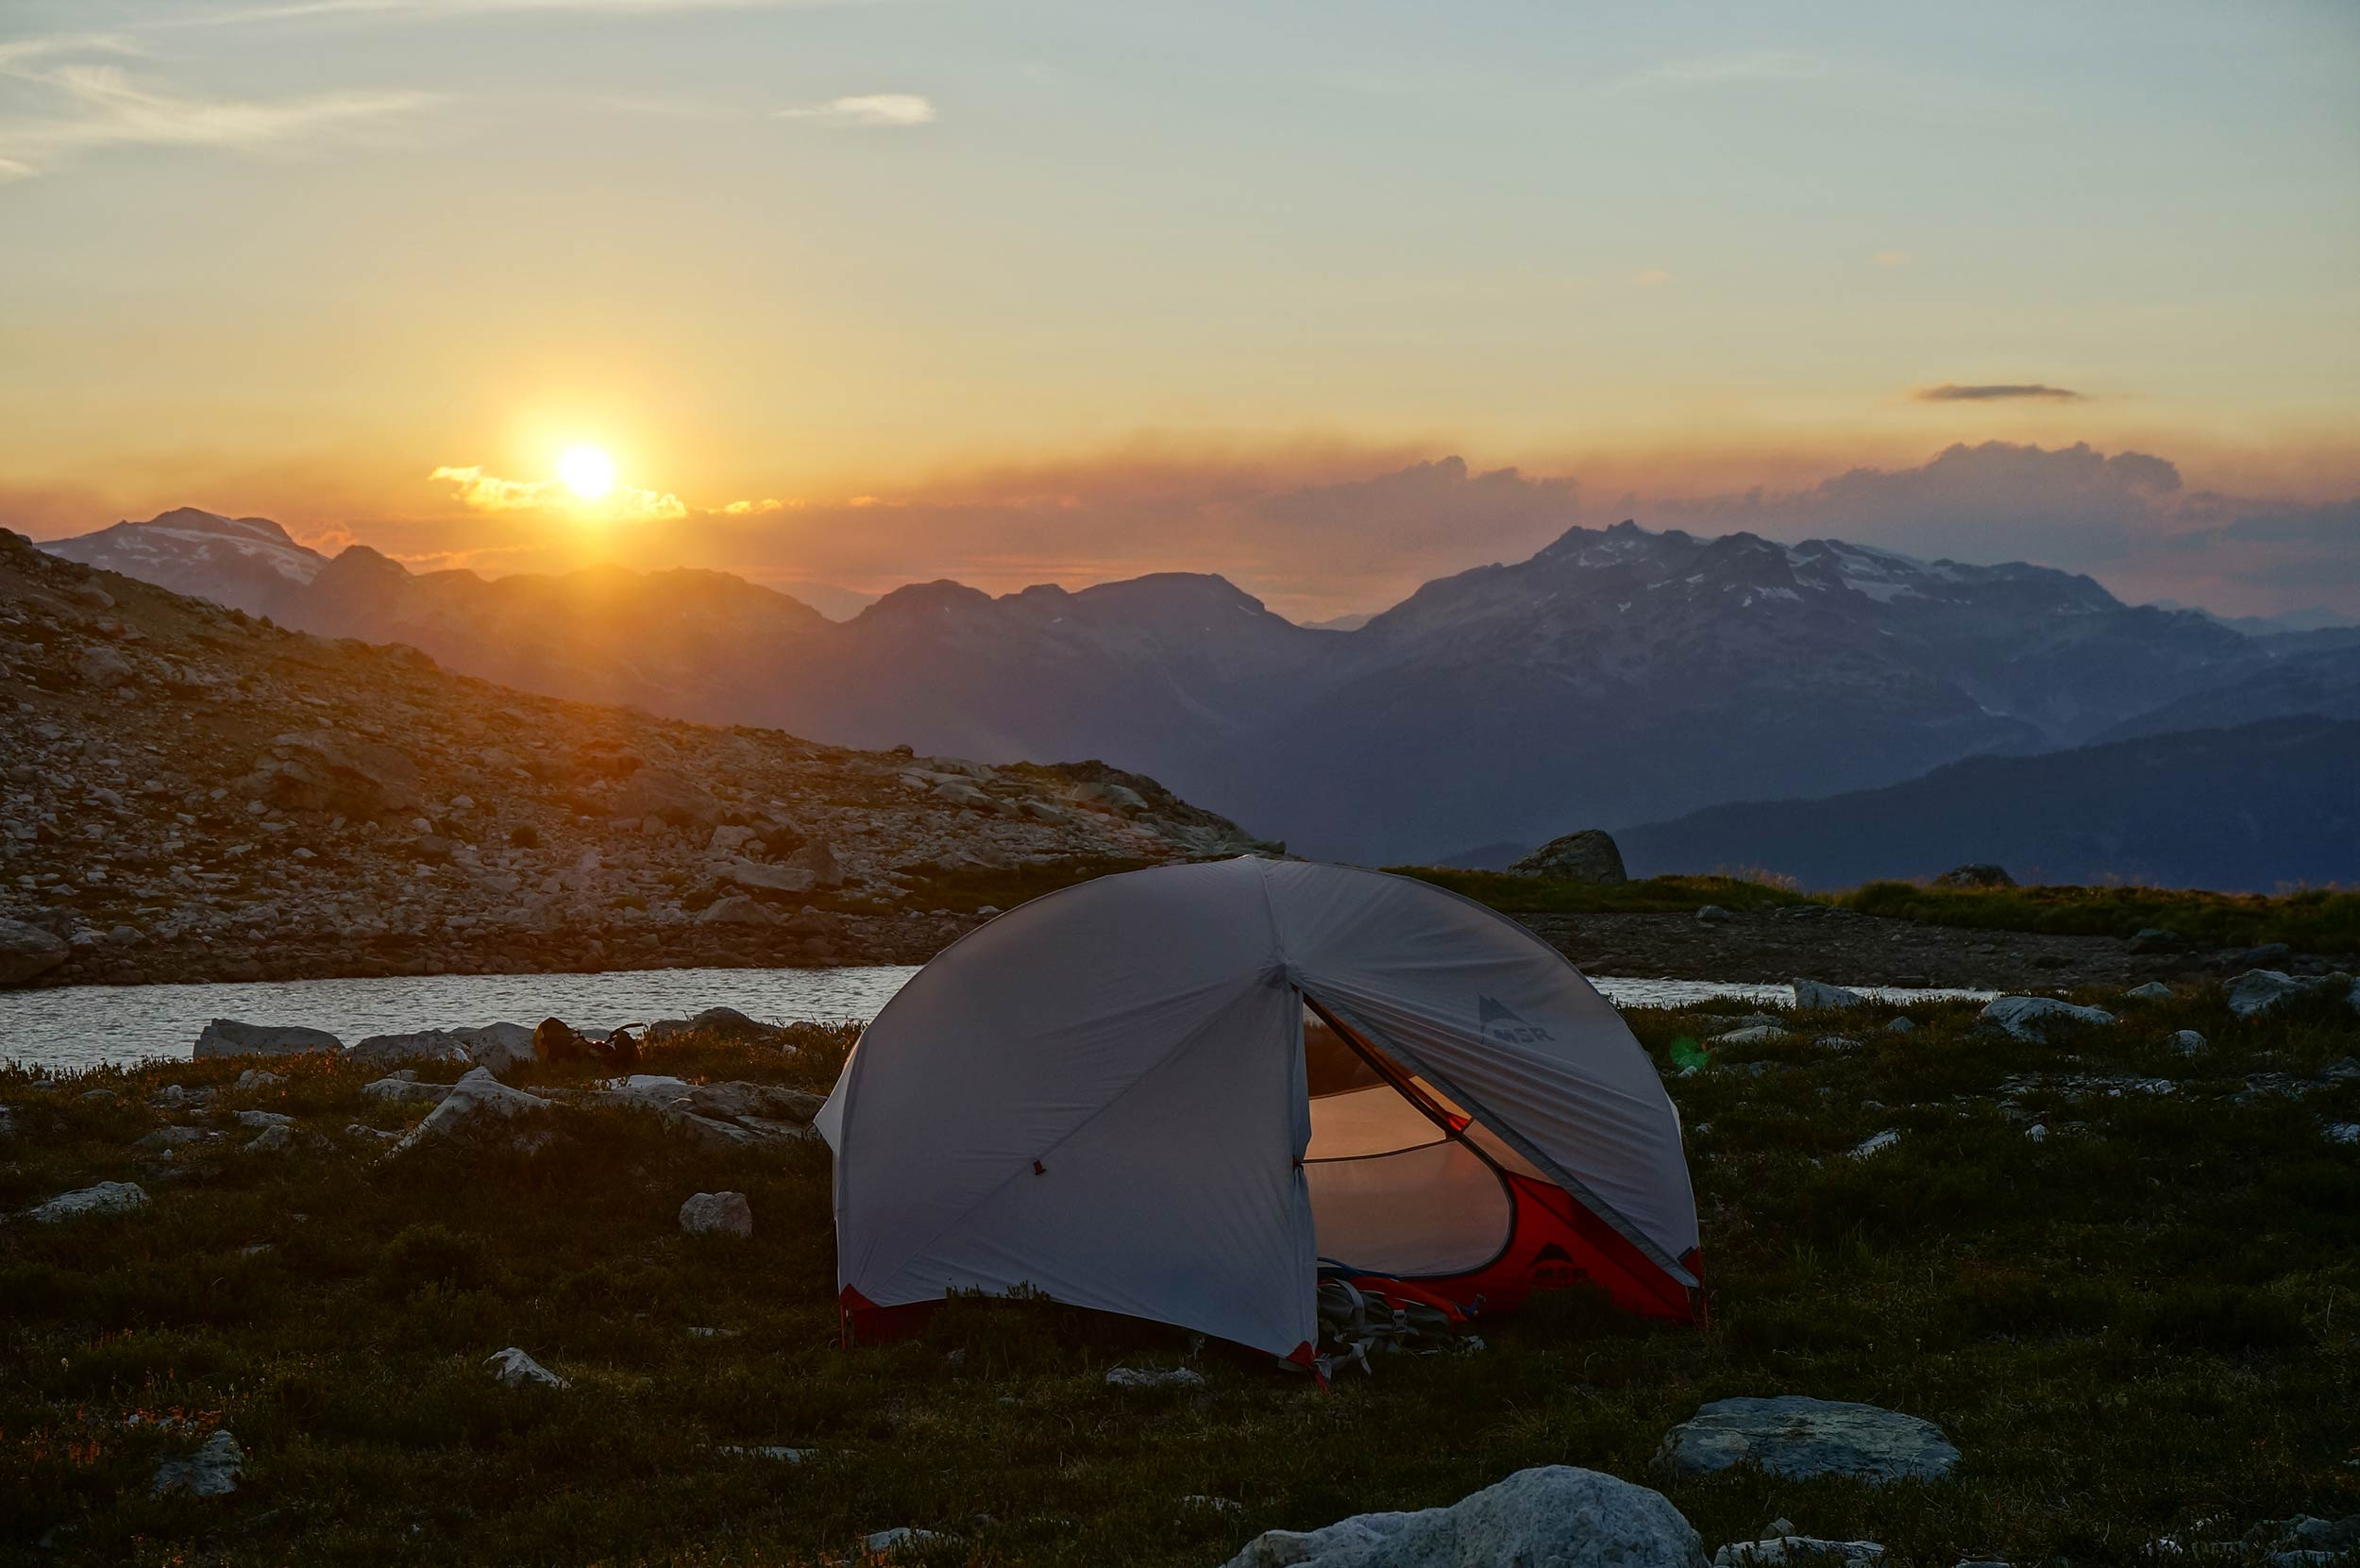 sproatt_alpine_trail_msr_tent_sunset8.jpg